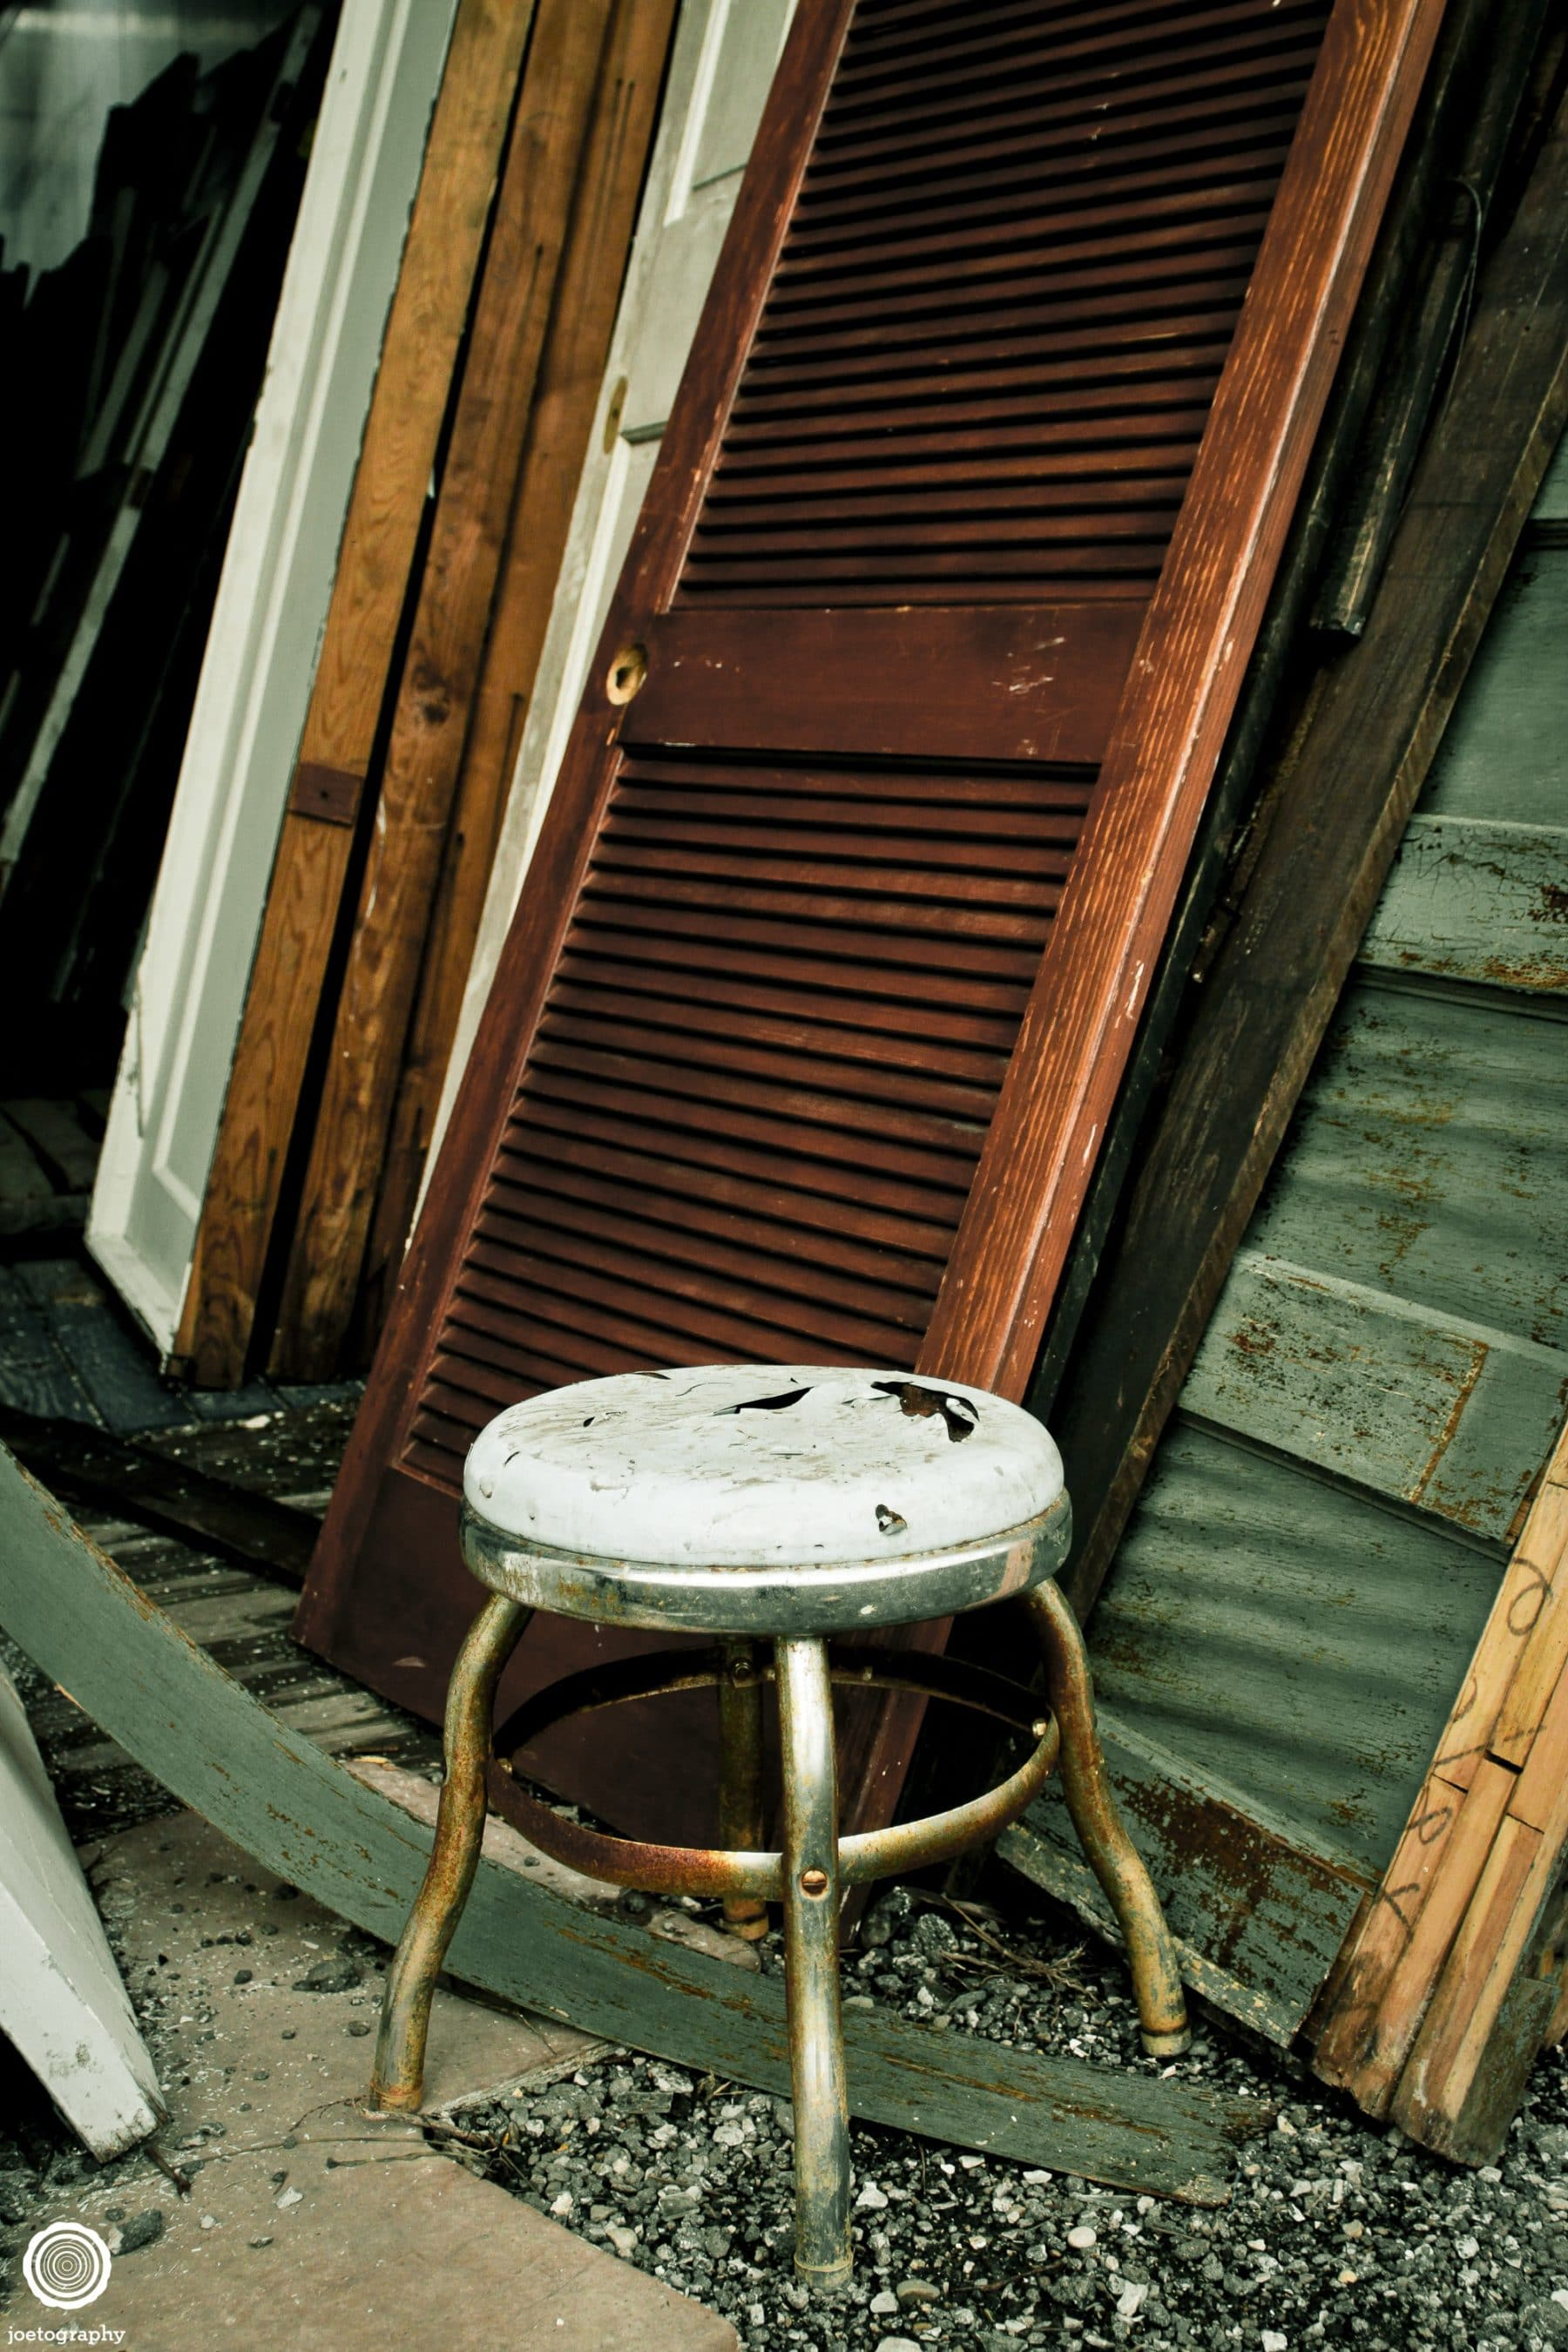 Docs-Salvage-Architectural-Photography-Indianapolis-26